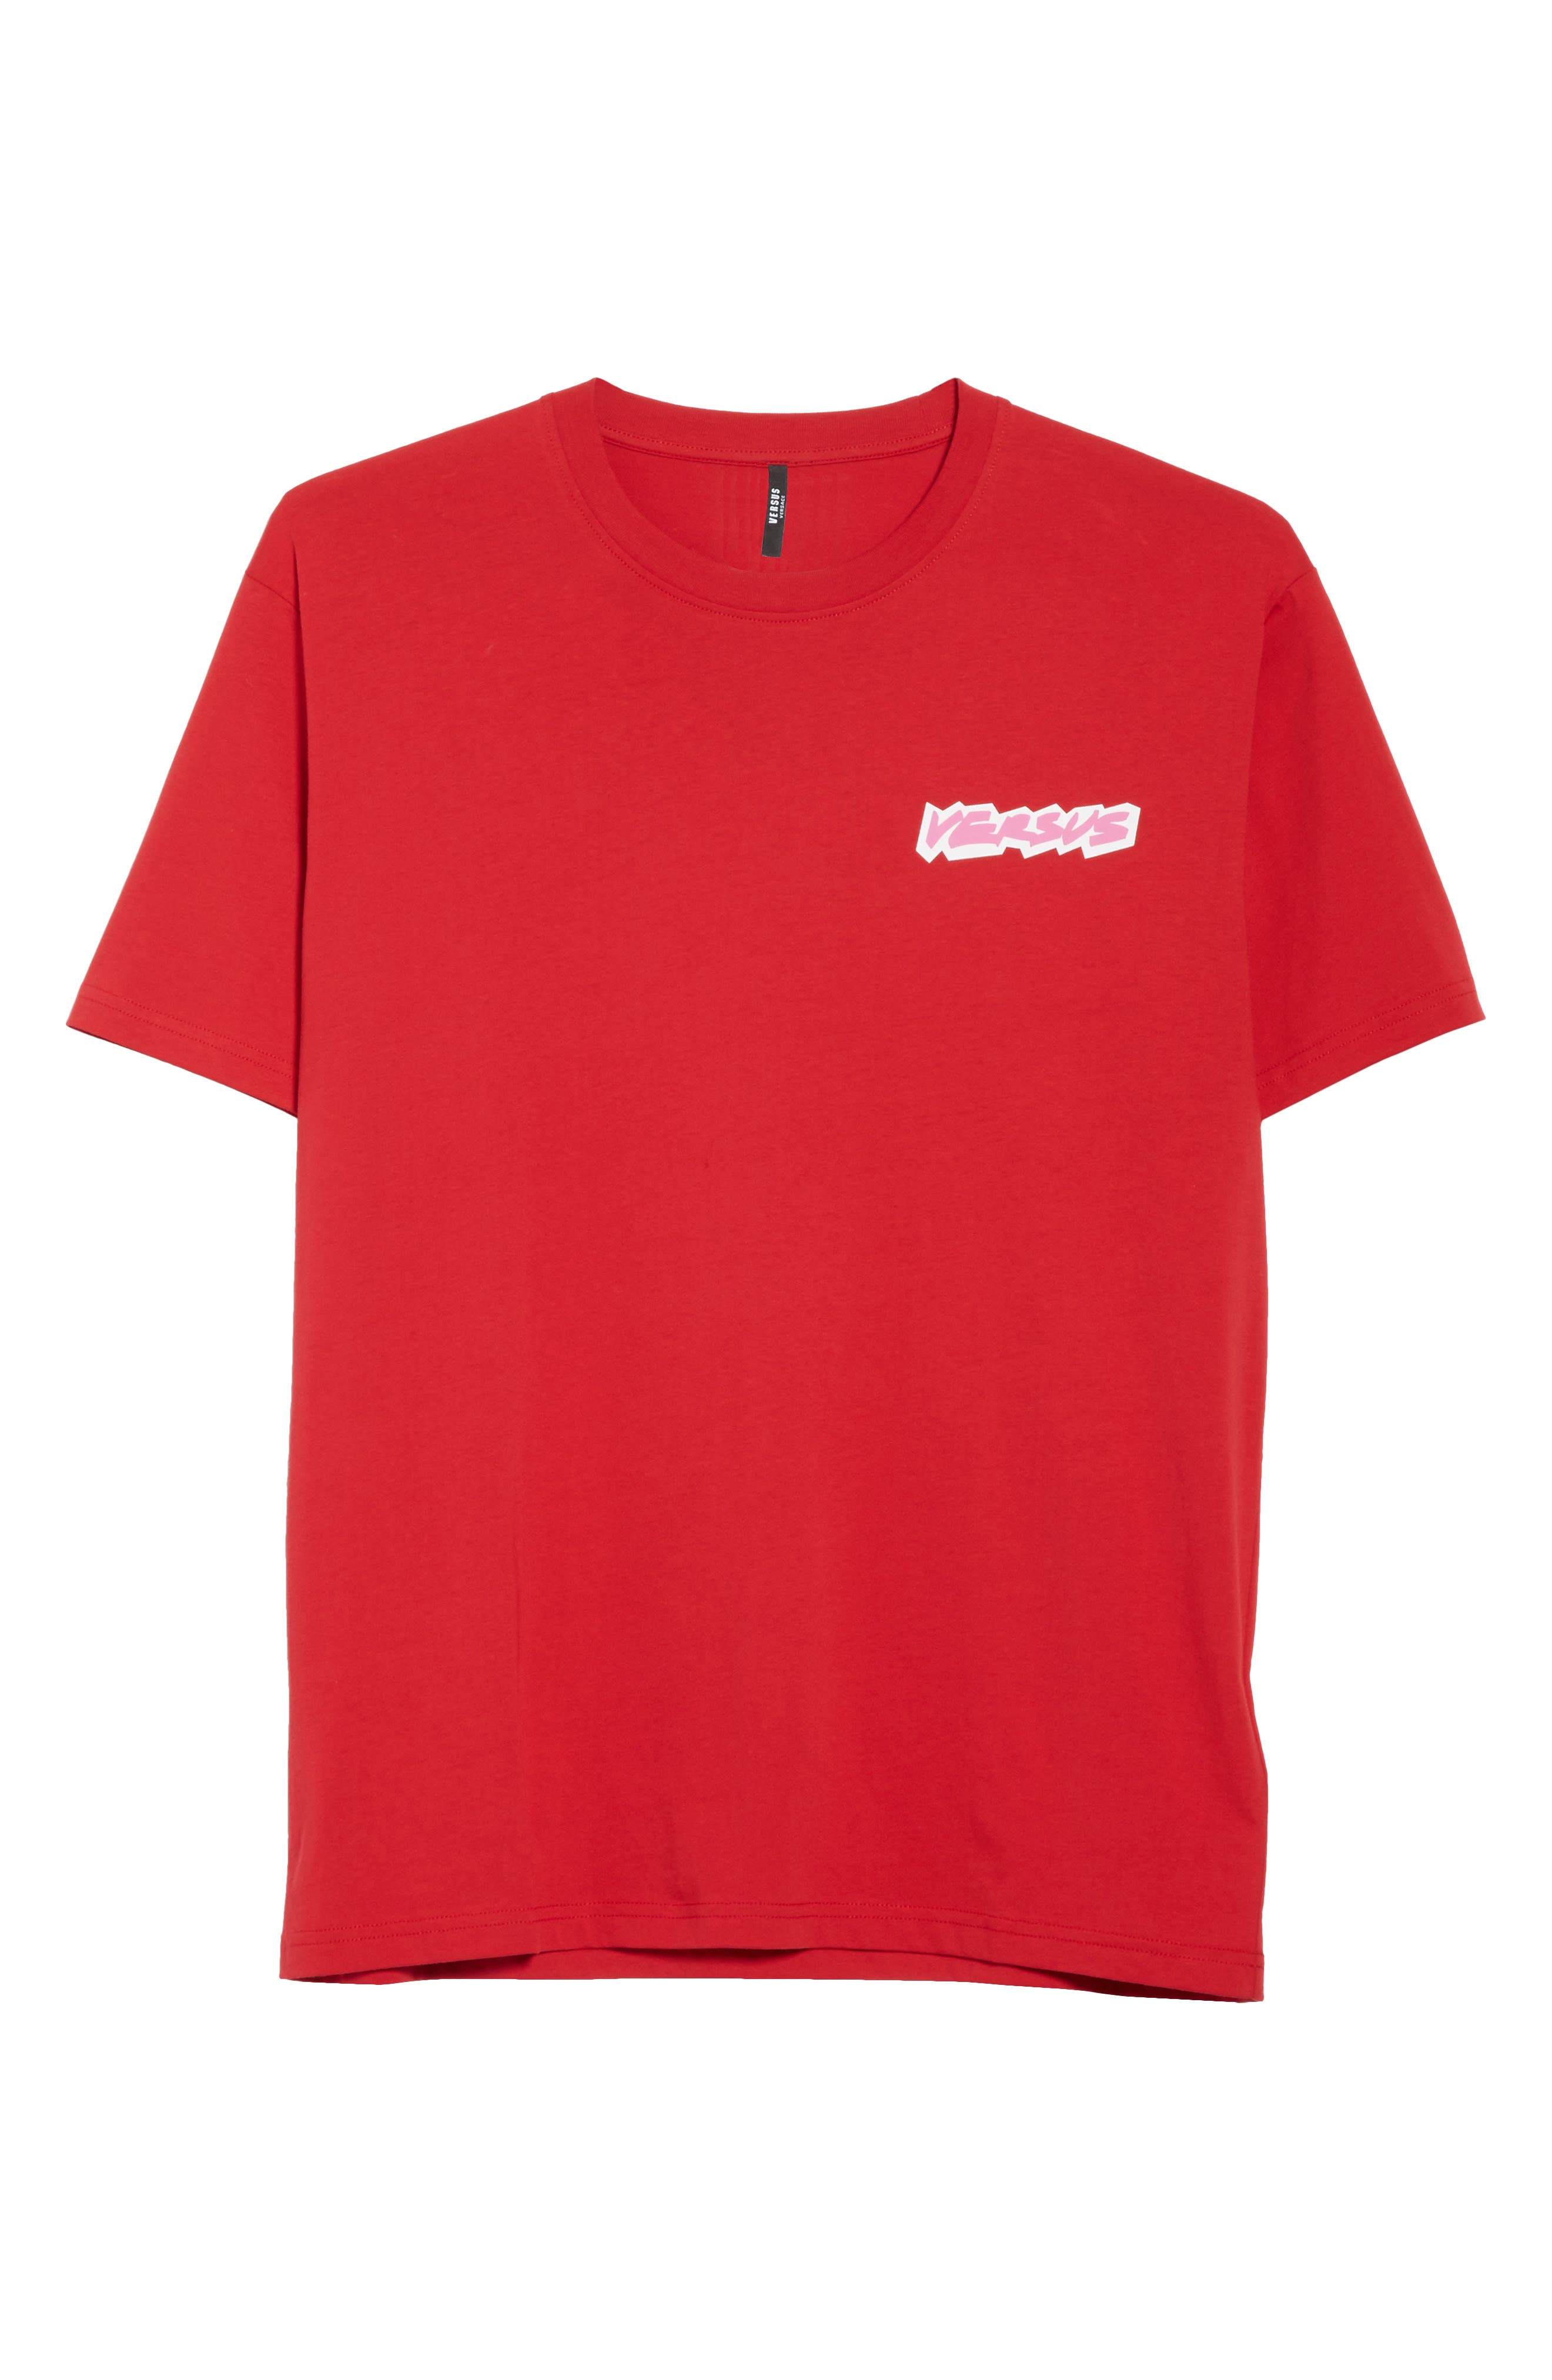 VERSUS by Versace Logo Graphic T-Shirt,                         Main,                         color, Red